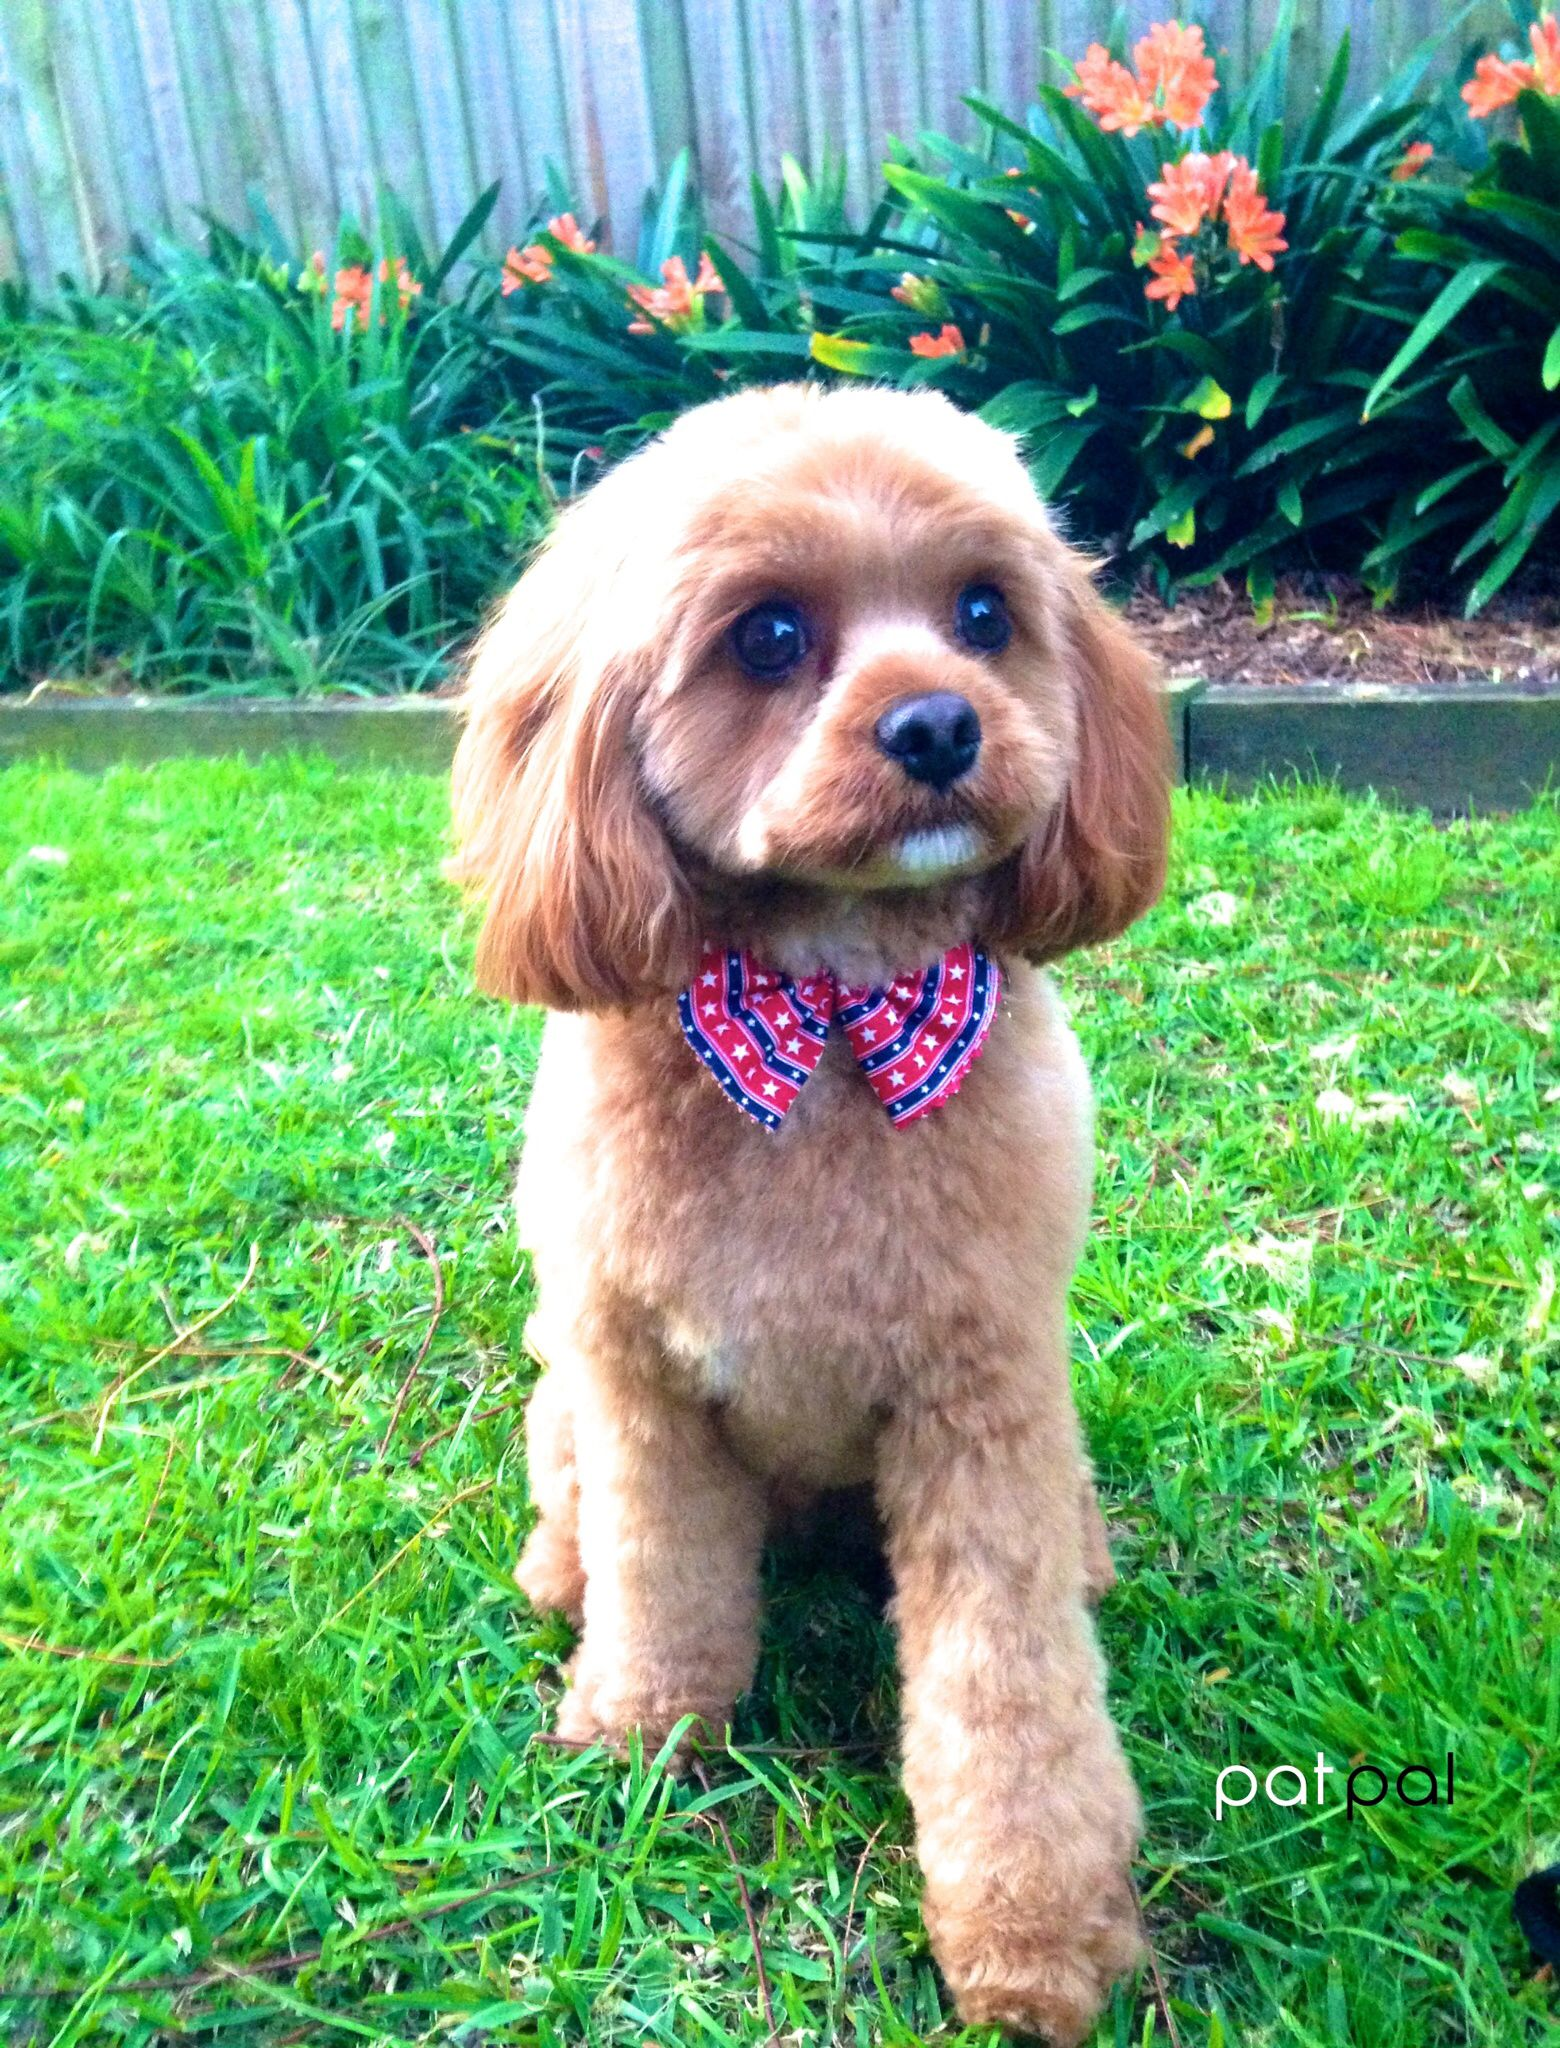 Cute Cavoodle At Patpal Dog Grooming Willoughby Sydney Www Patpaldoggrooming Com Dog Grooming Salons Dog Grooming Cute Animals